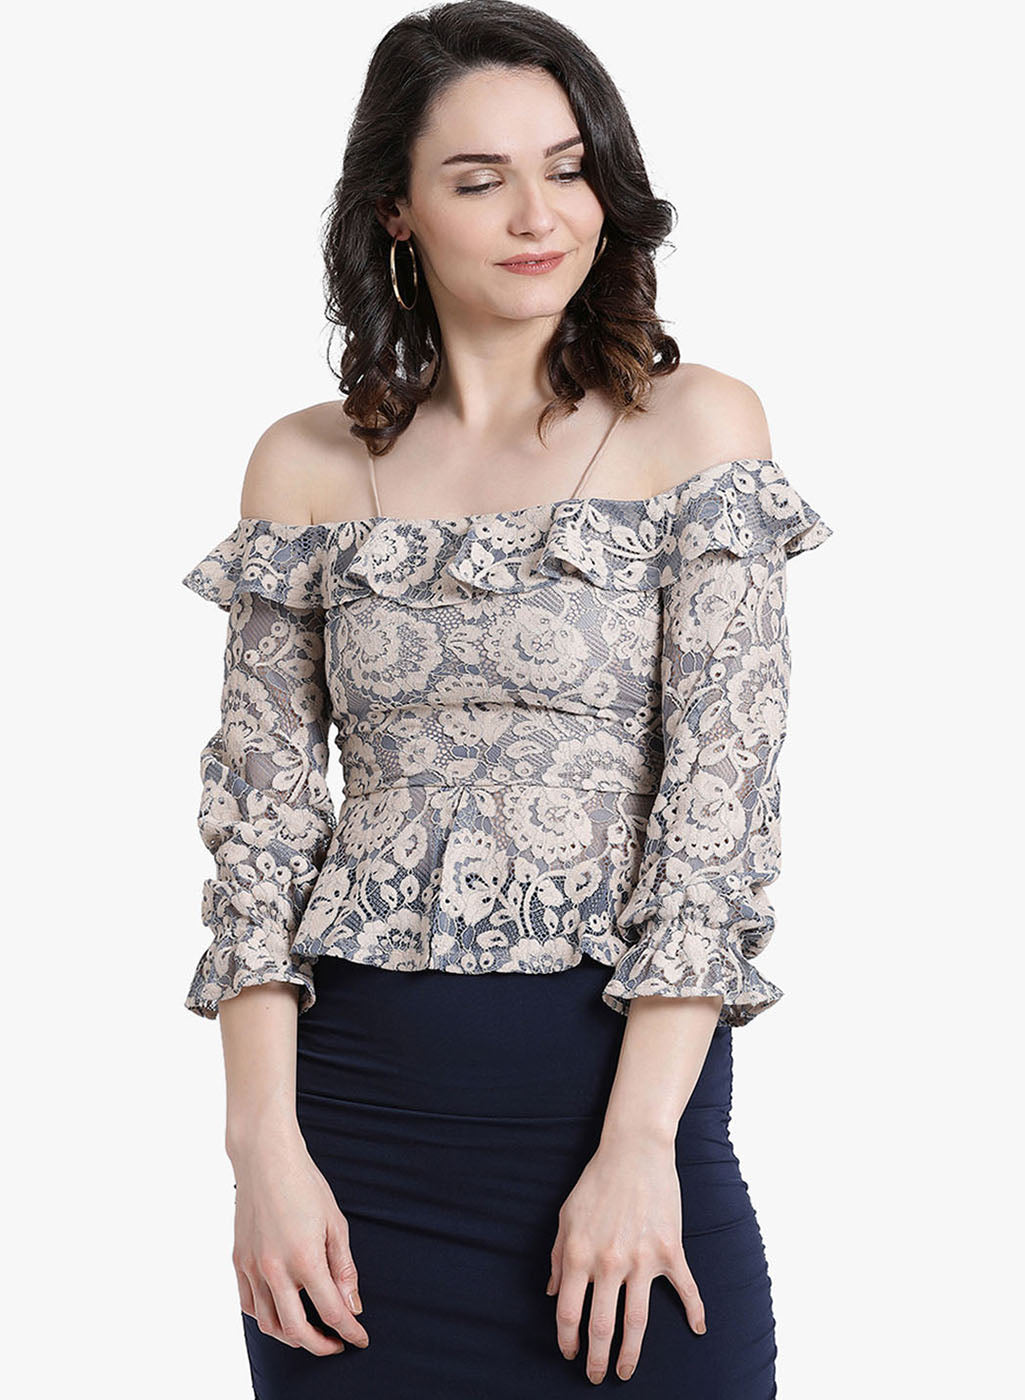 Lace Spaghetti Top (Additional 23% OFF)